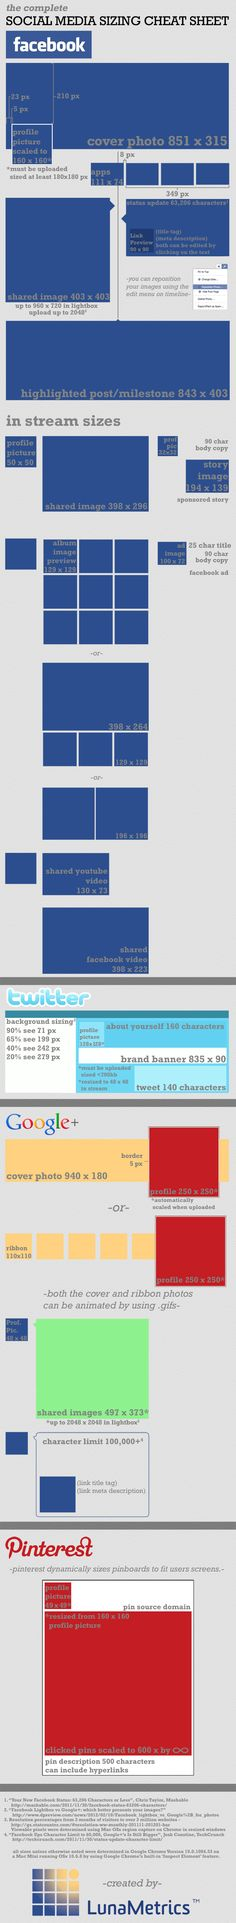 Handig! Social Media Cheat Sheet - alle maten op een rij - Facebook, G+ Pinterest en twitter